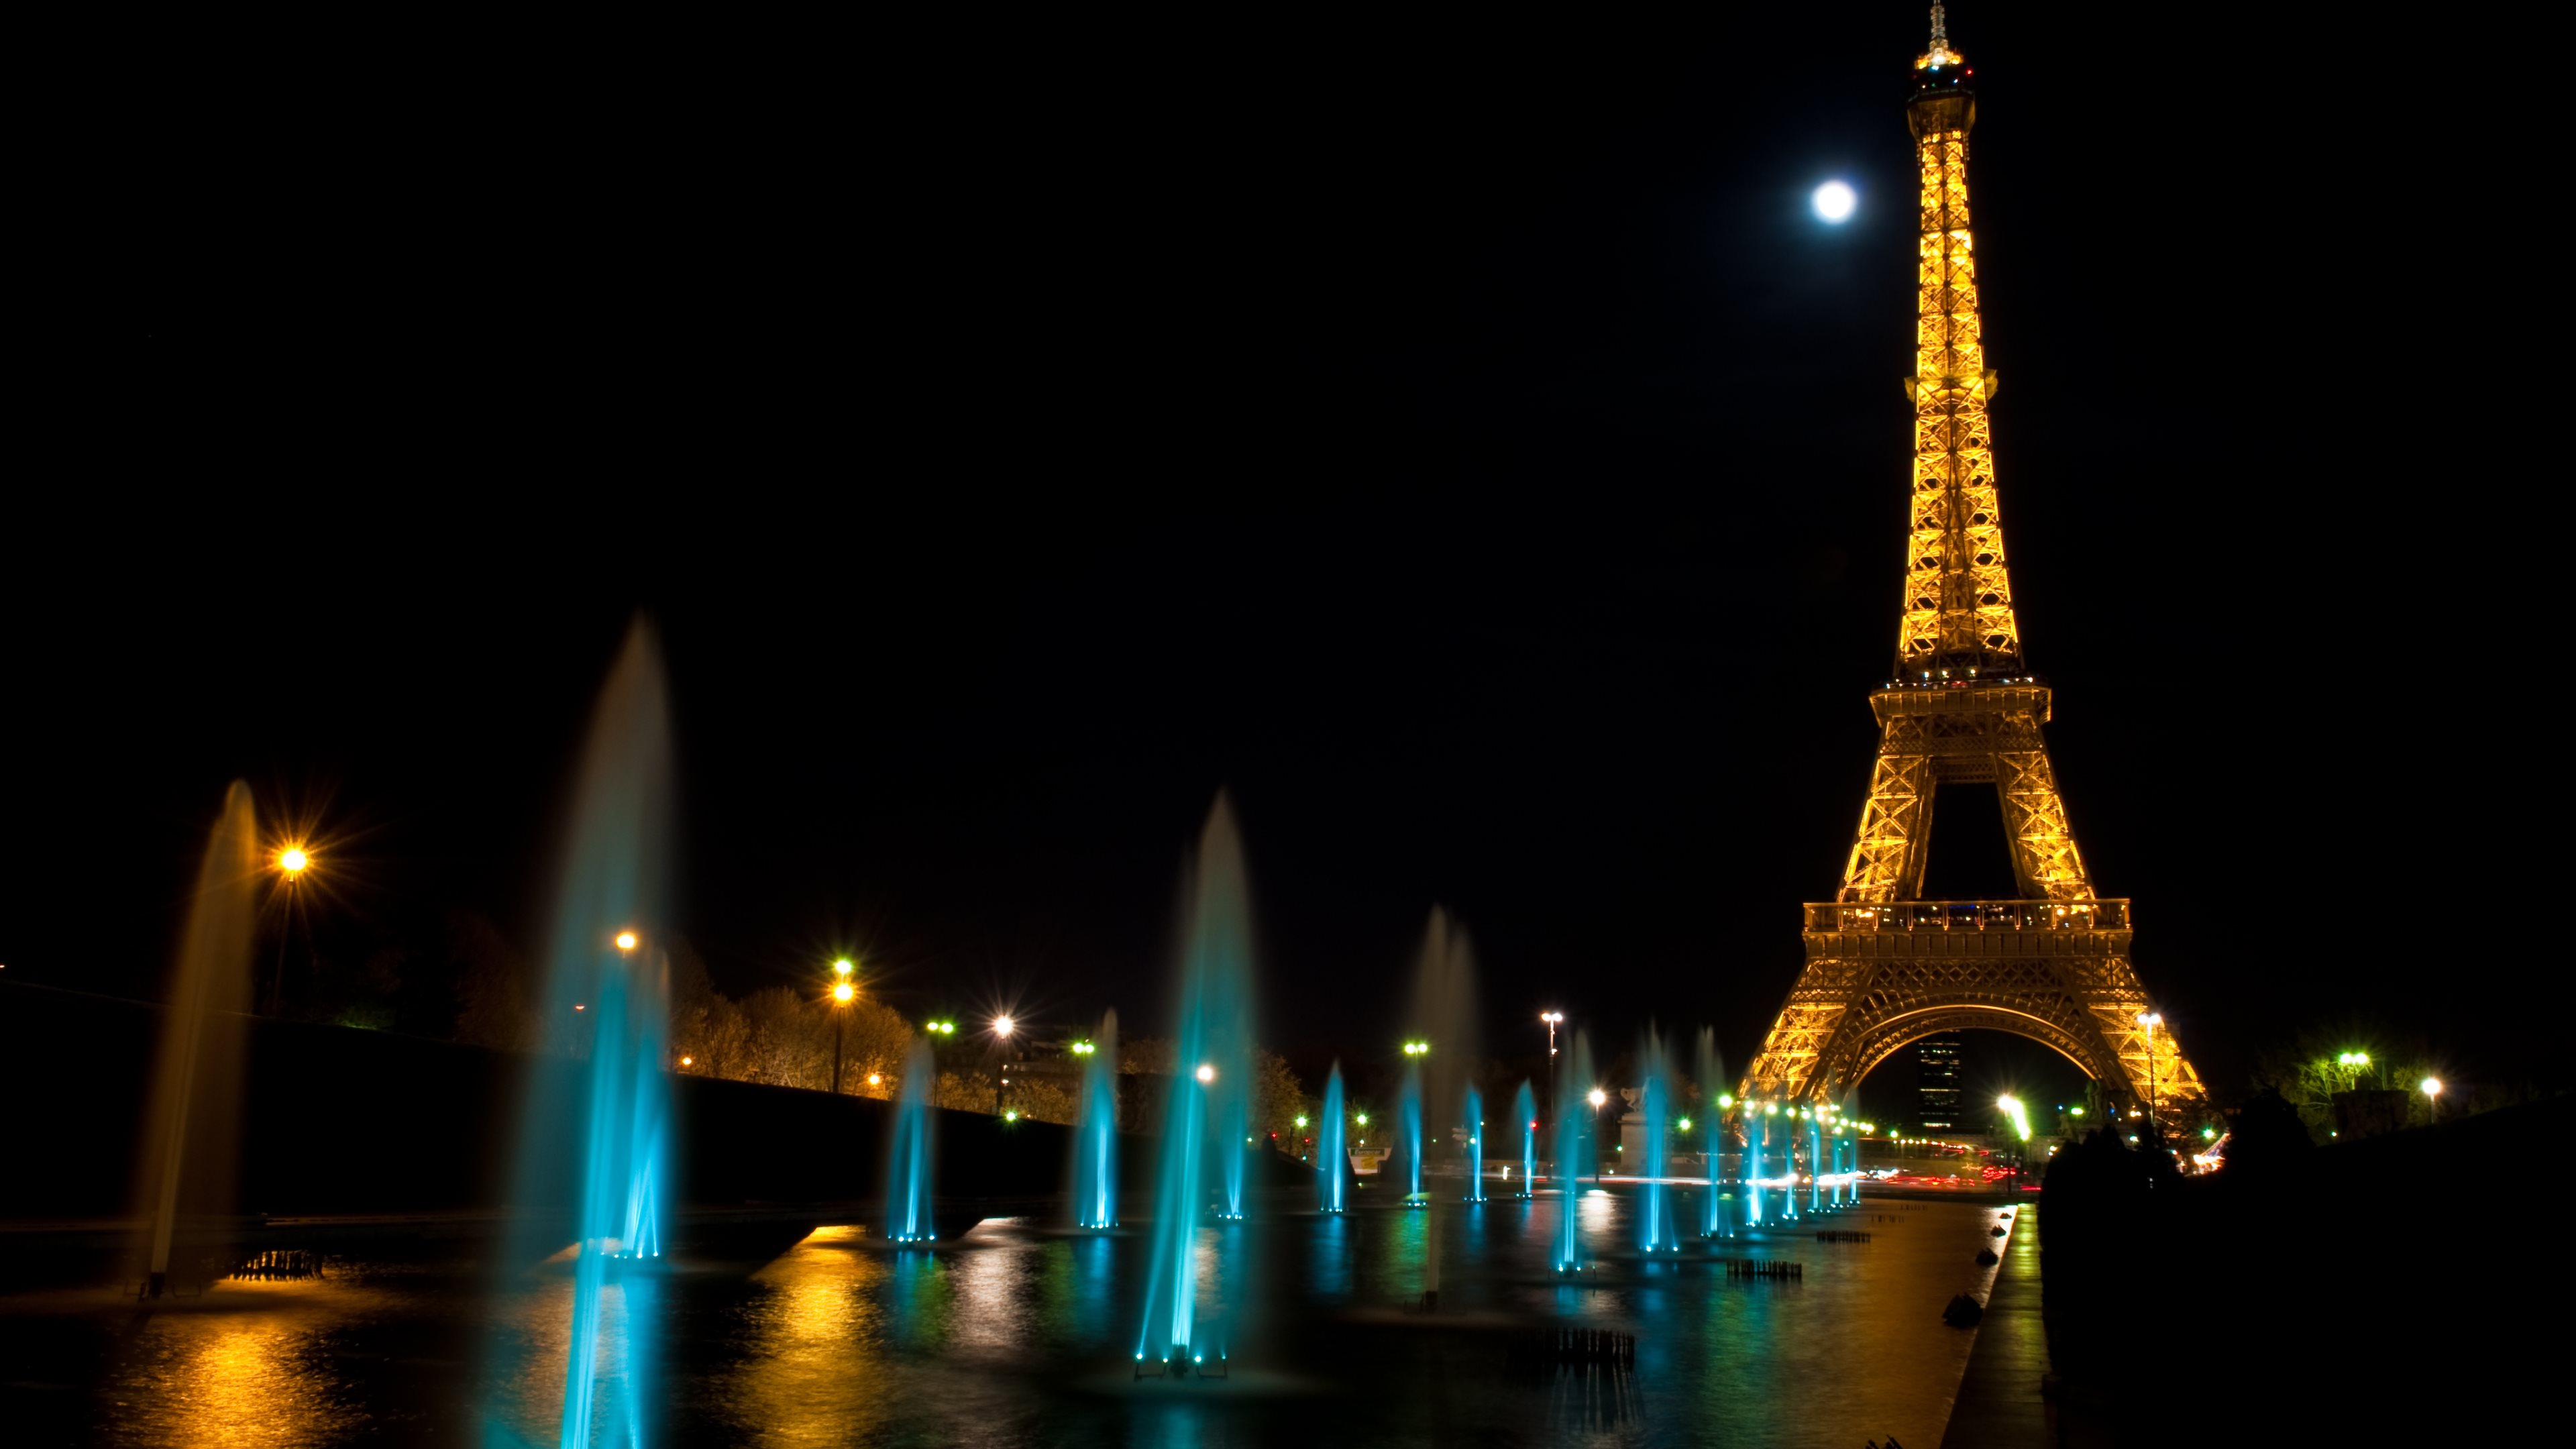 10 Most Popular Tour De France Wallpapers Full Hd 1080p: Paris At Night. Tour Eiffel Wallpapers